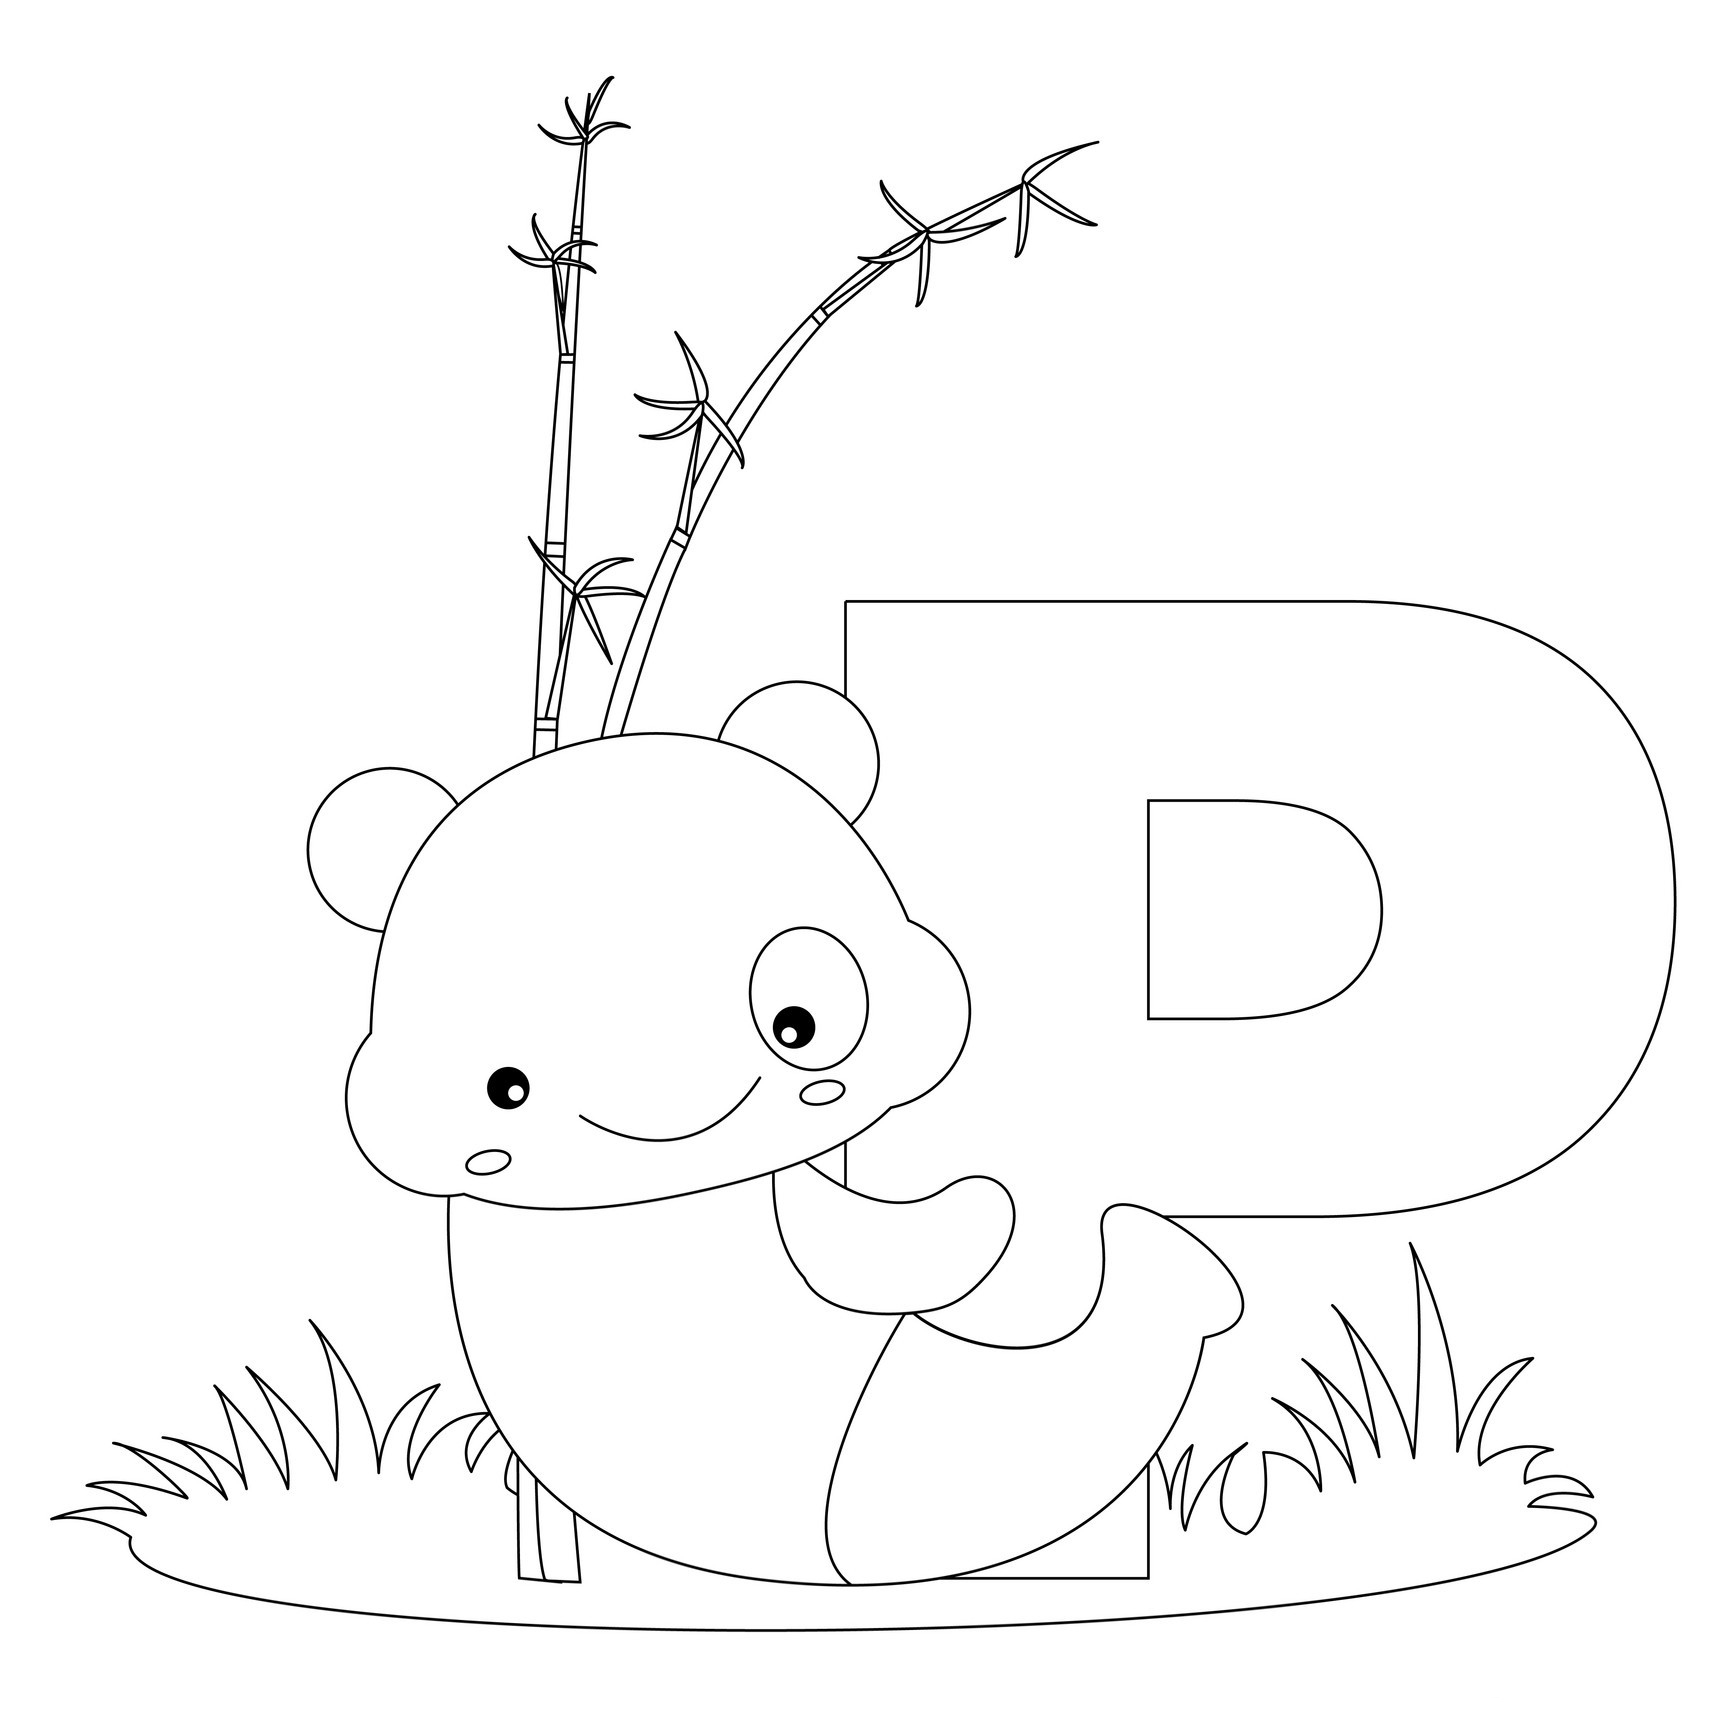 coloring letter p printable free printable alphabet coloring pages for kids best printable letter p coloring